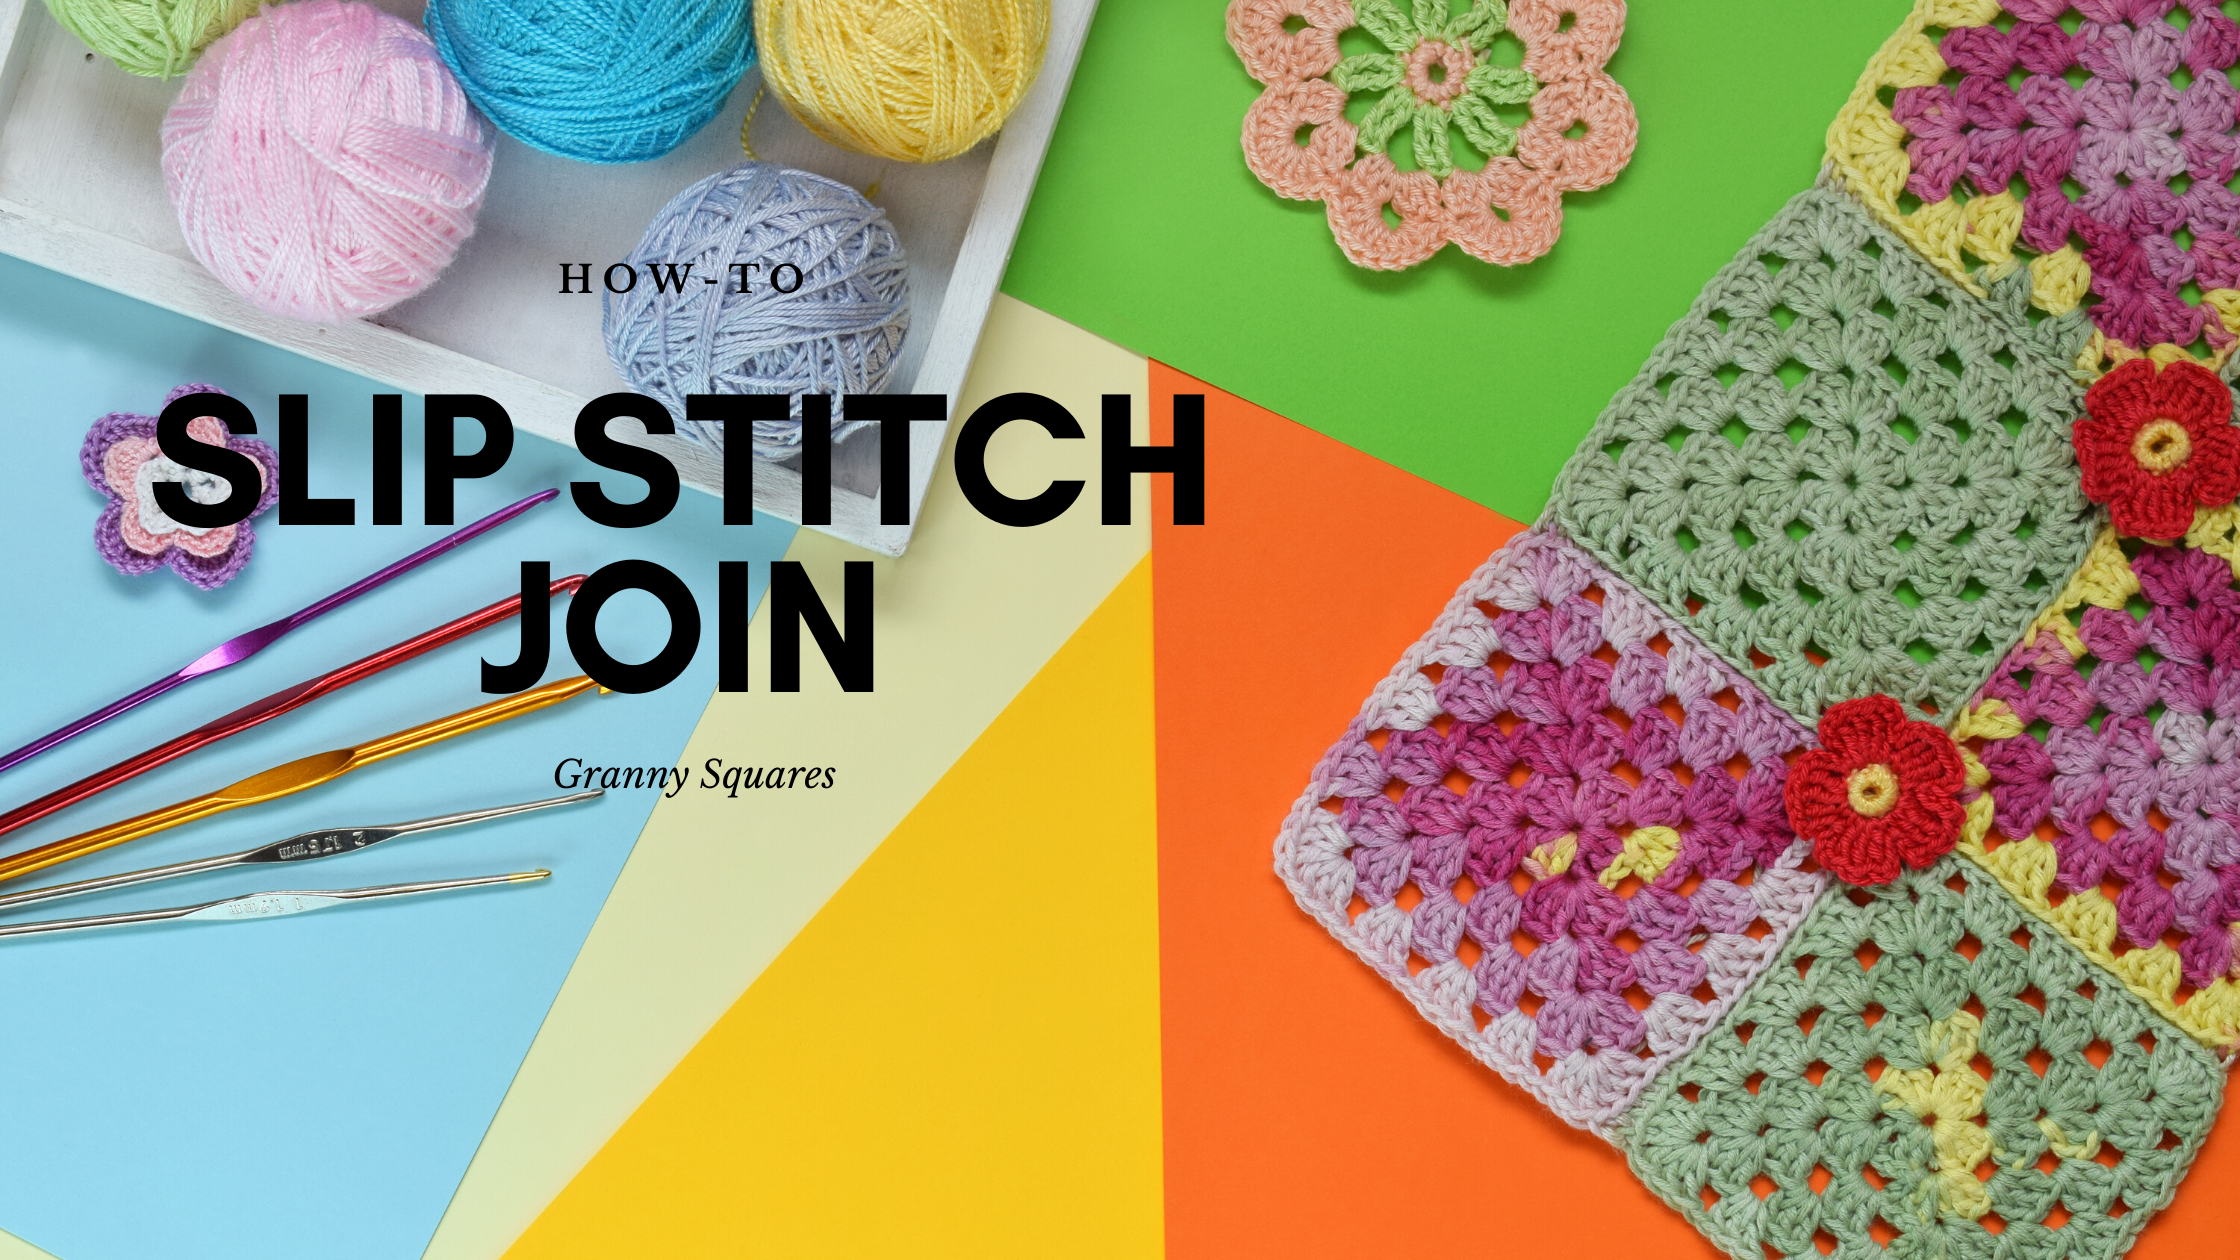 How To Crochet the Slip Stitch Join